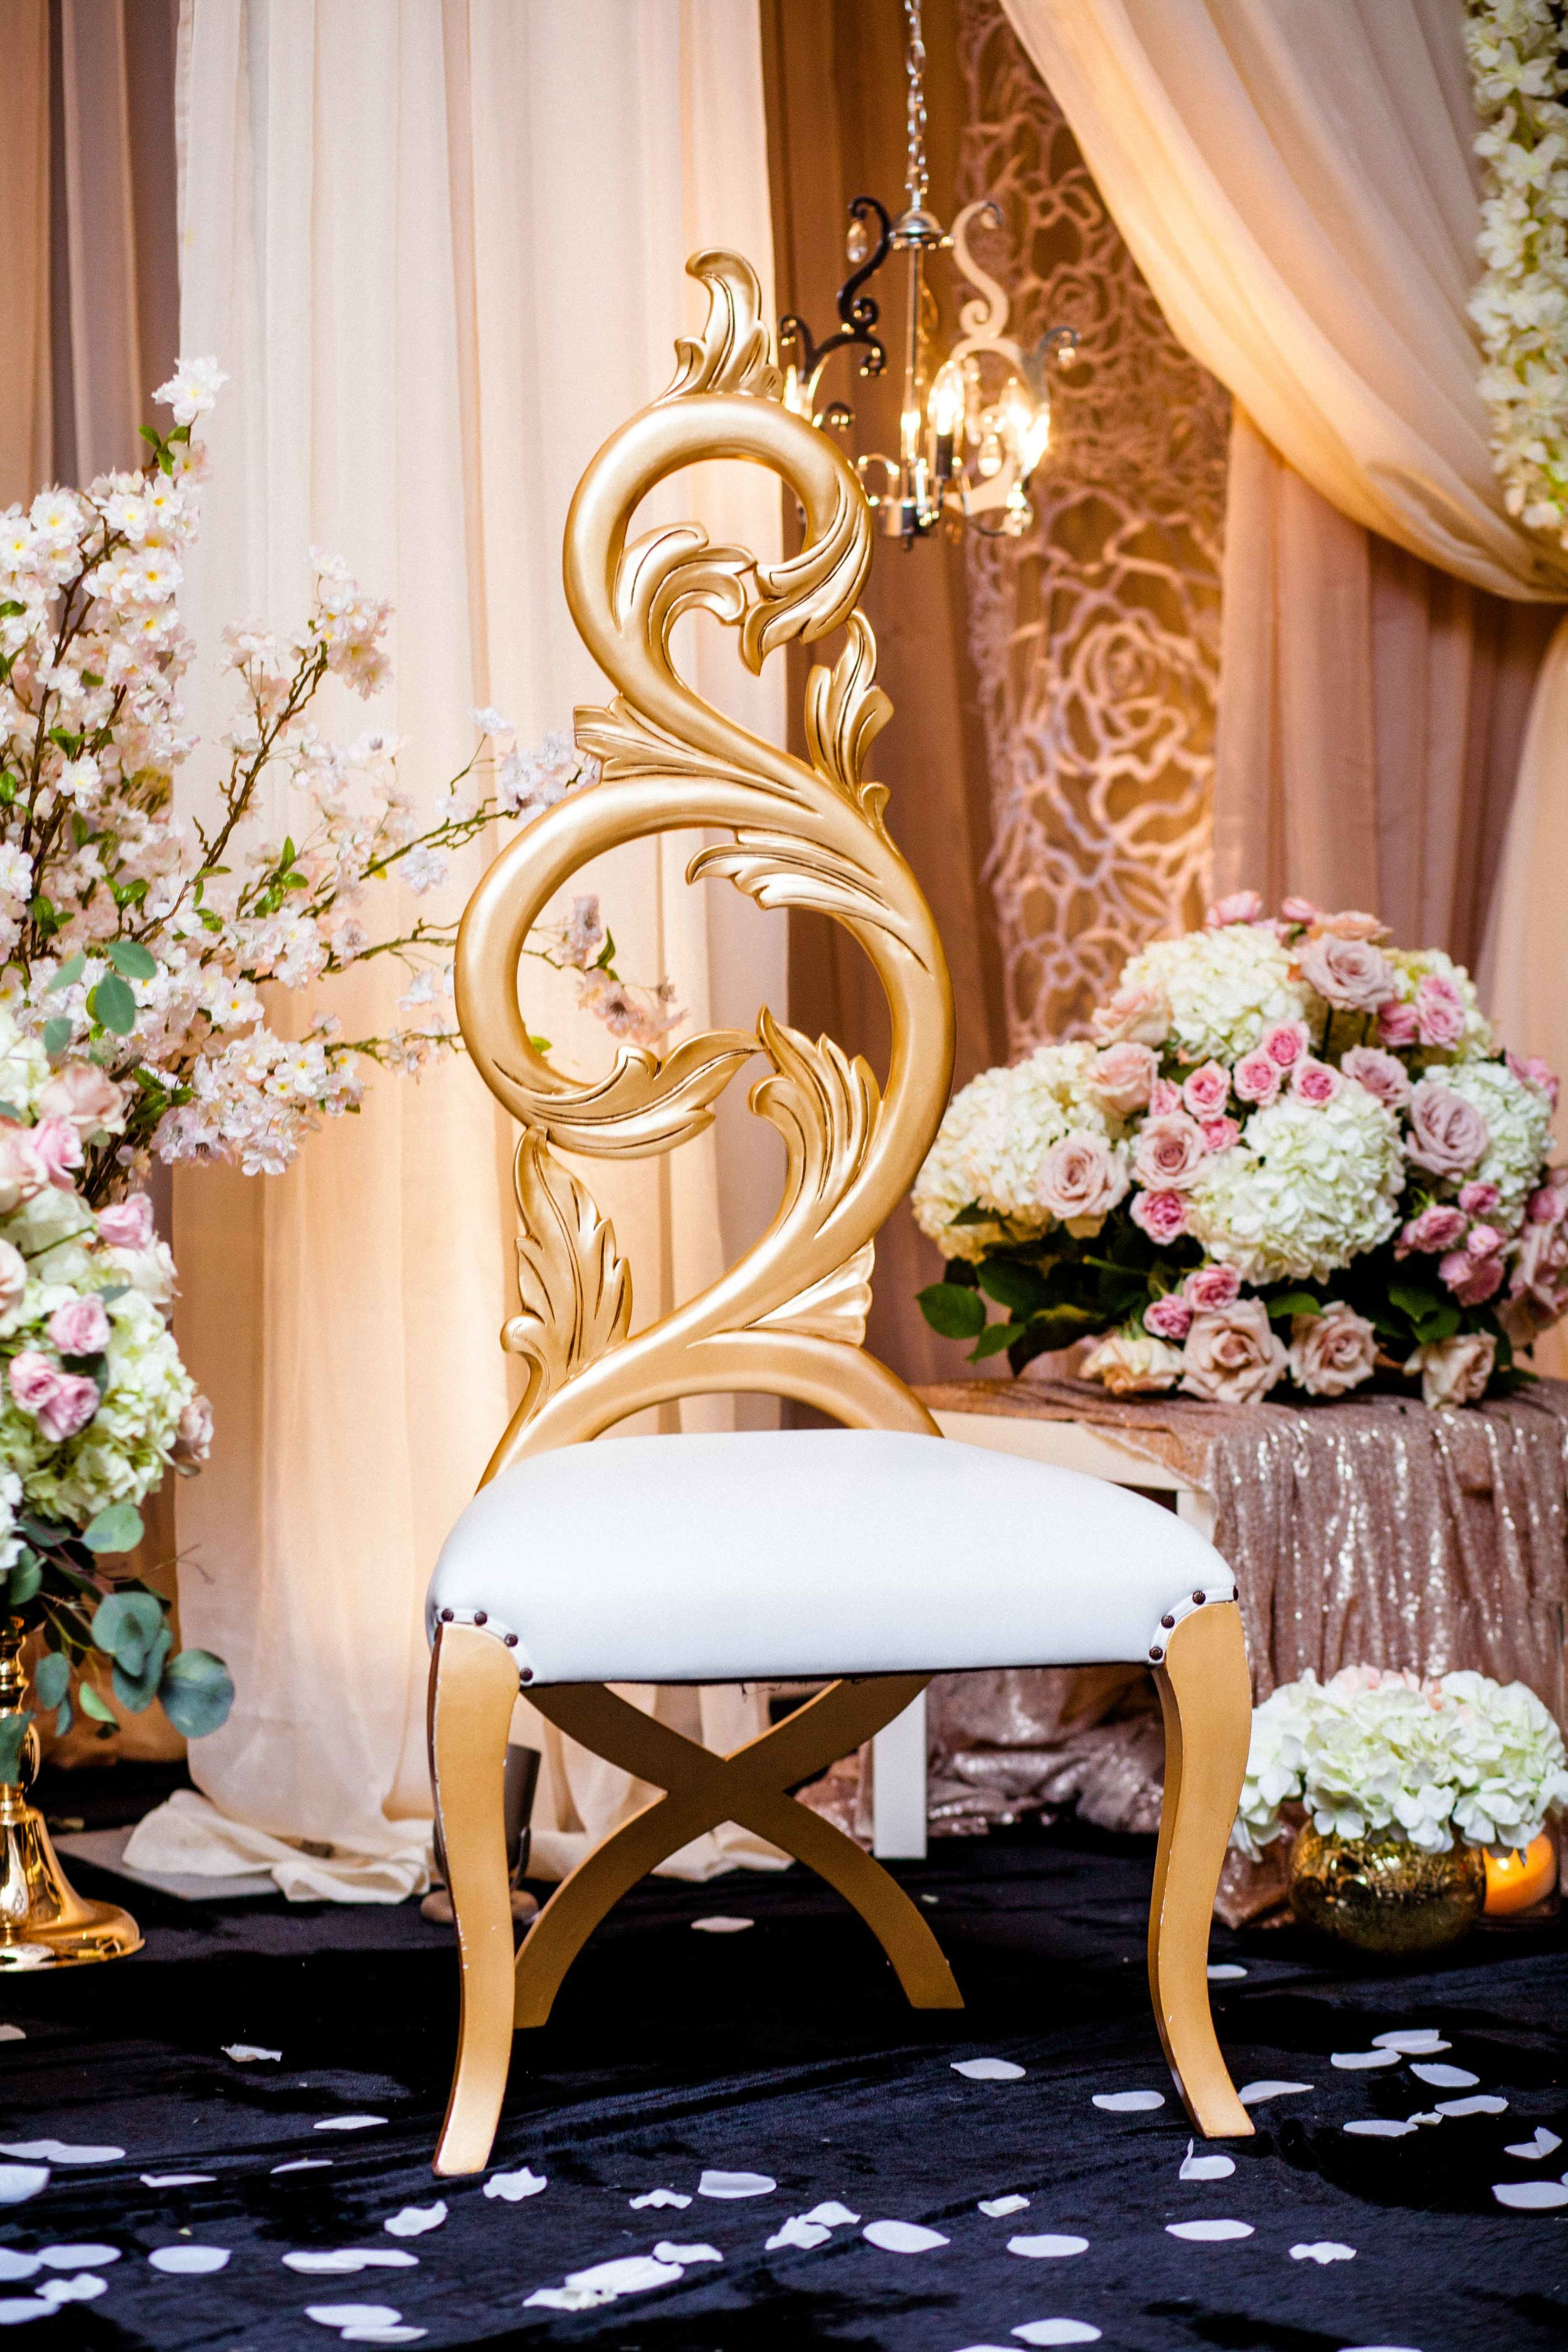 Wedding cake gold white karimah gheddai photography African Wedding Photographer Muslim Habesha Somali Pakistani Indian Sultana Wedding Decor Apollo Convention Centre Mississauga Ontario Luxury